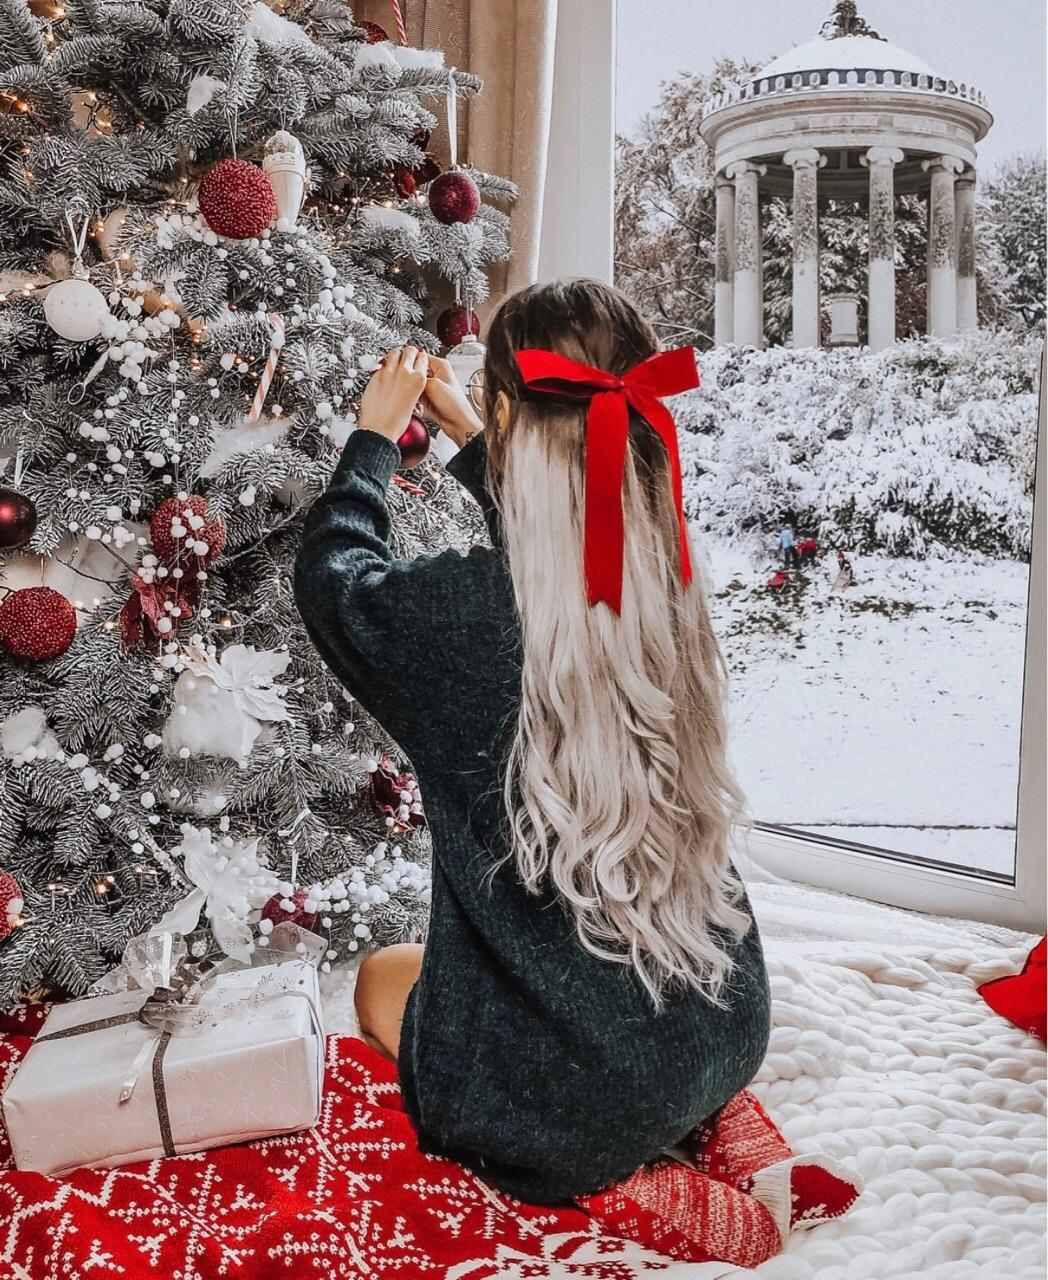 Blondie with red ribbon in long hair decorating Christmas tree